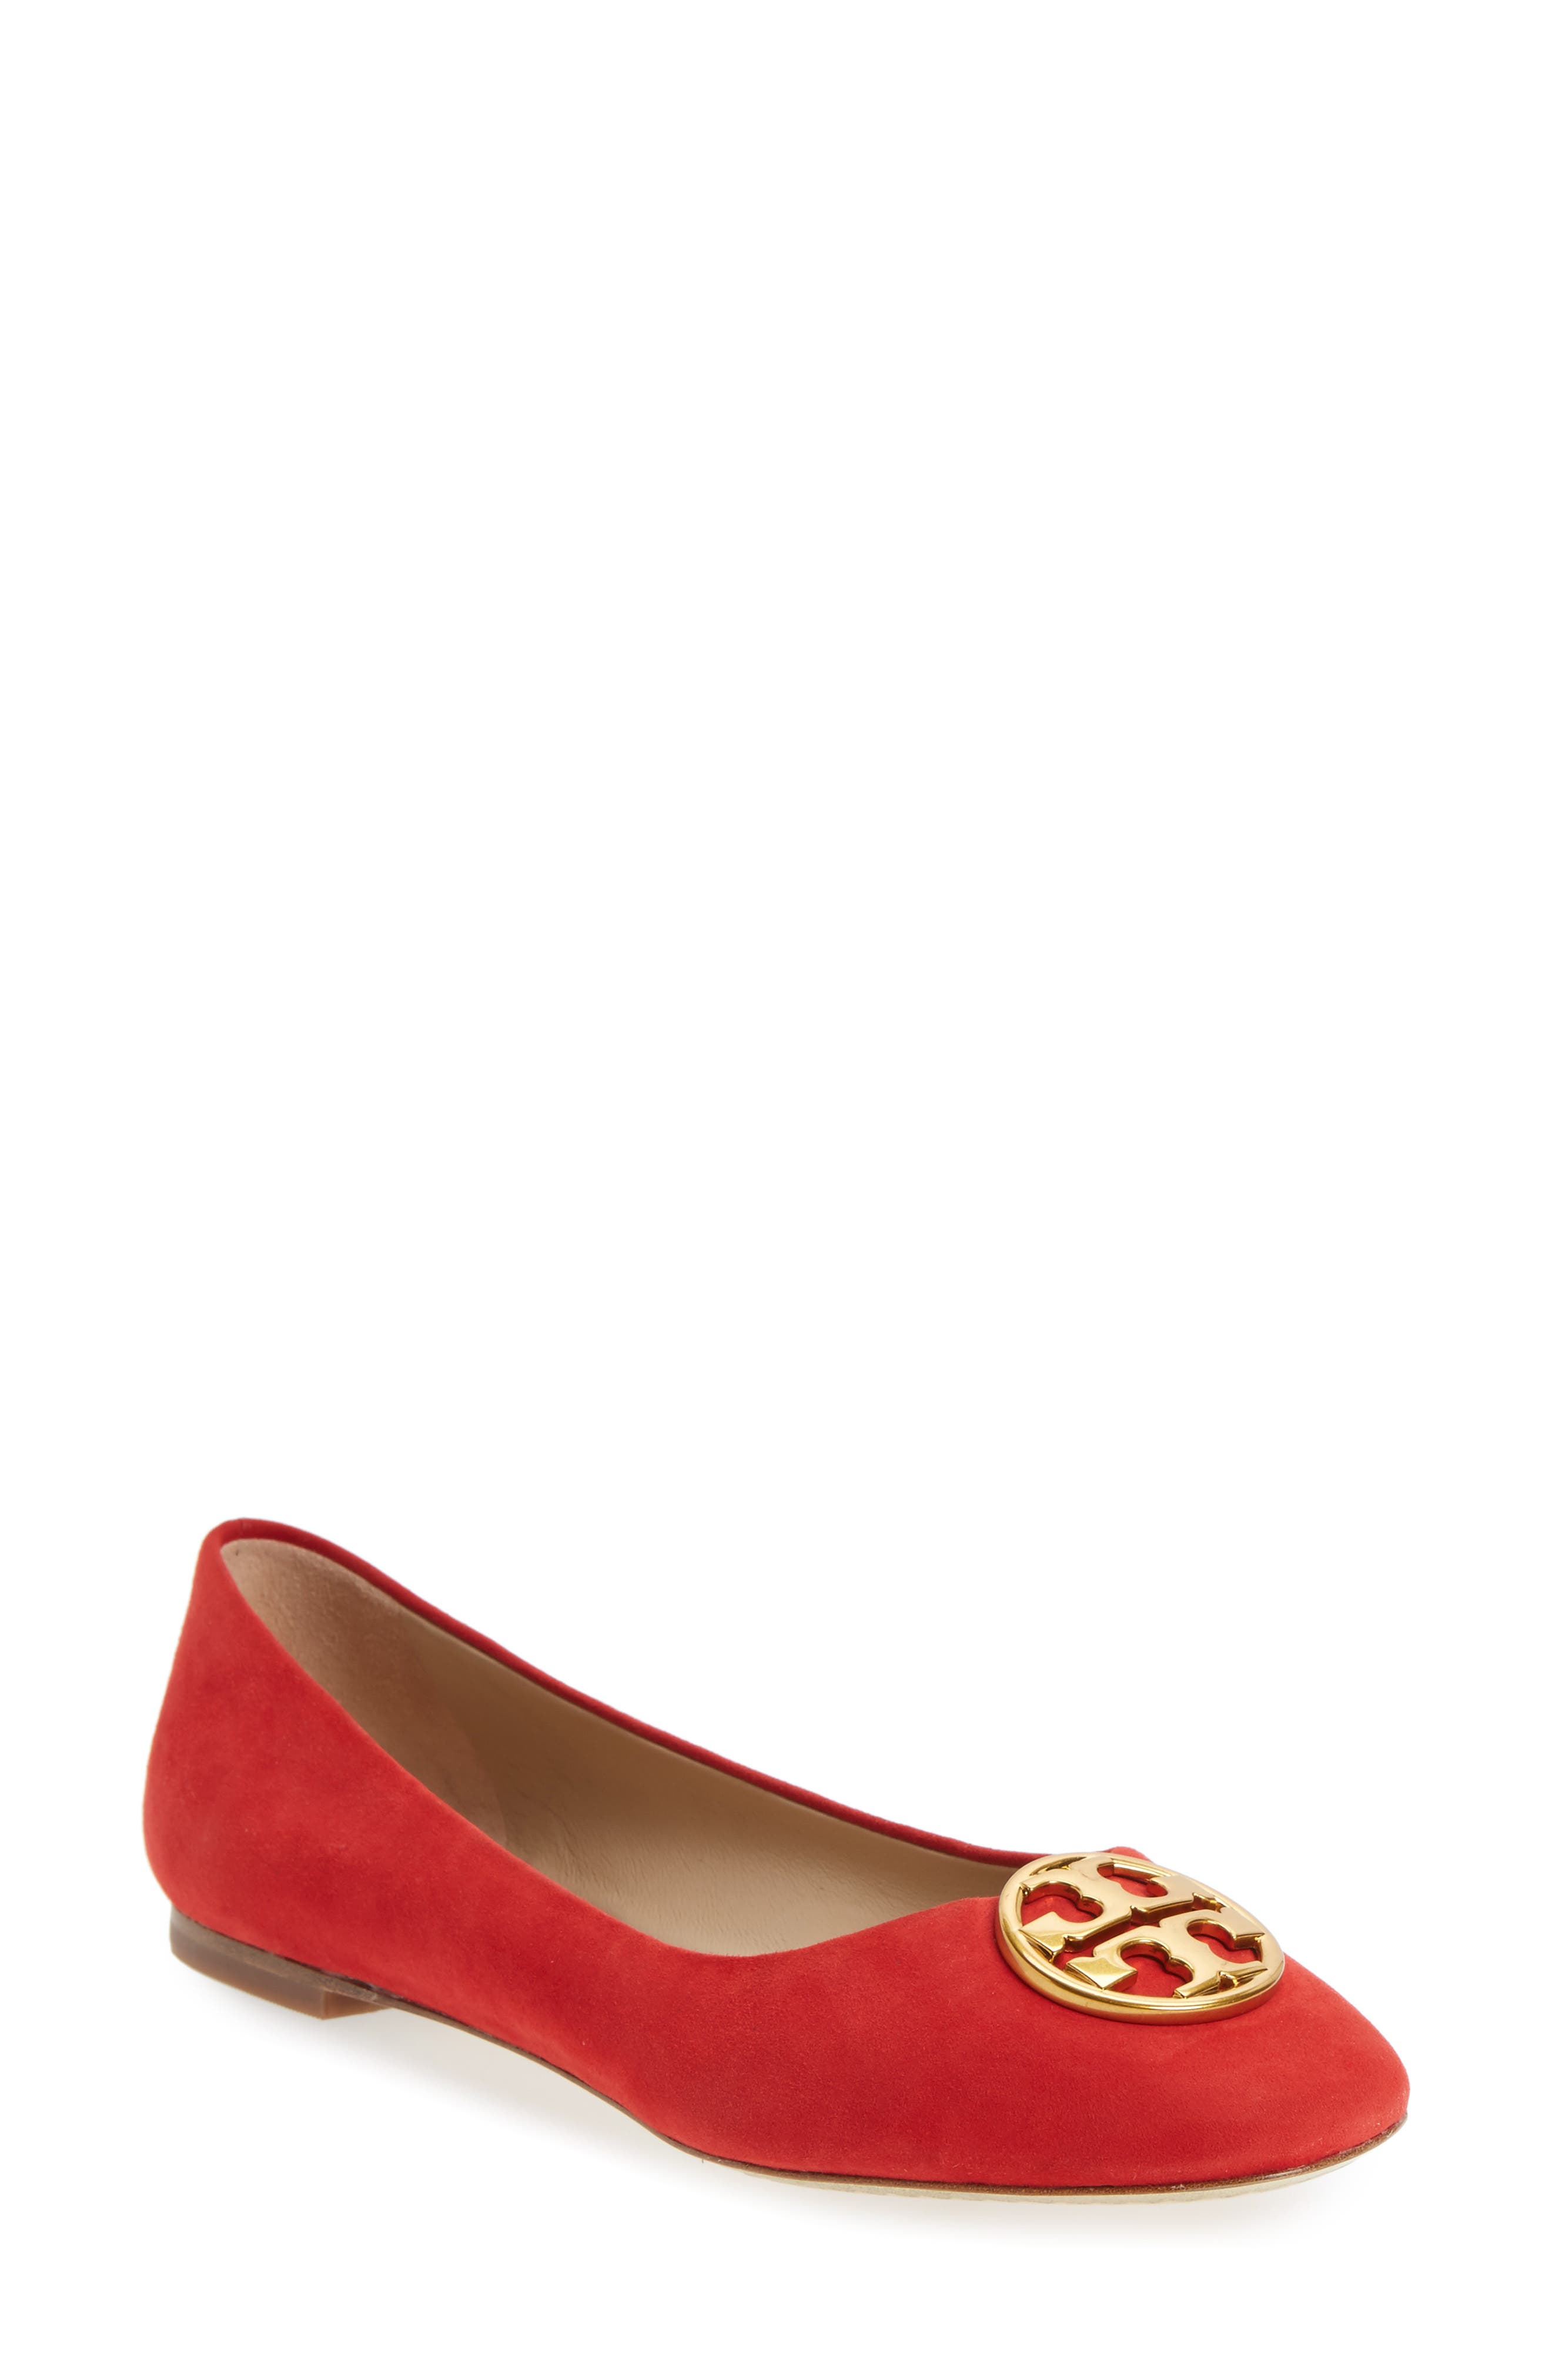 Chelsea Ballet Flat,                             Main thumbnail 1, color,                             Liberty Red